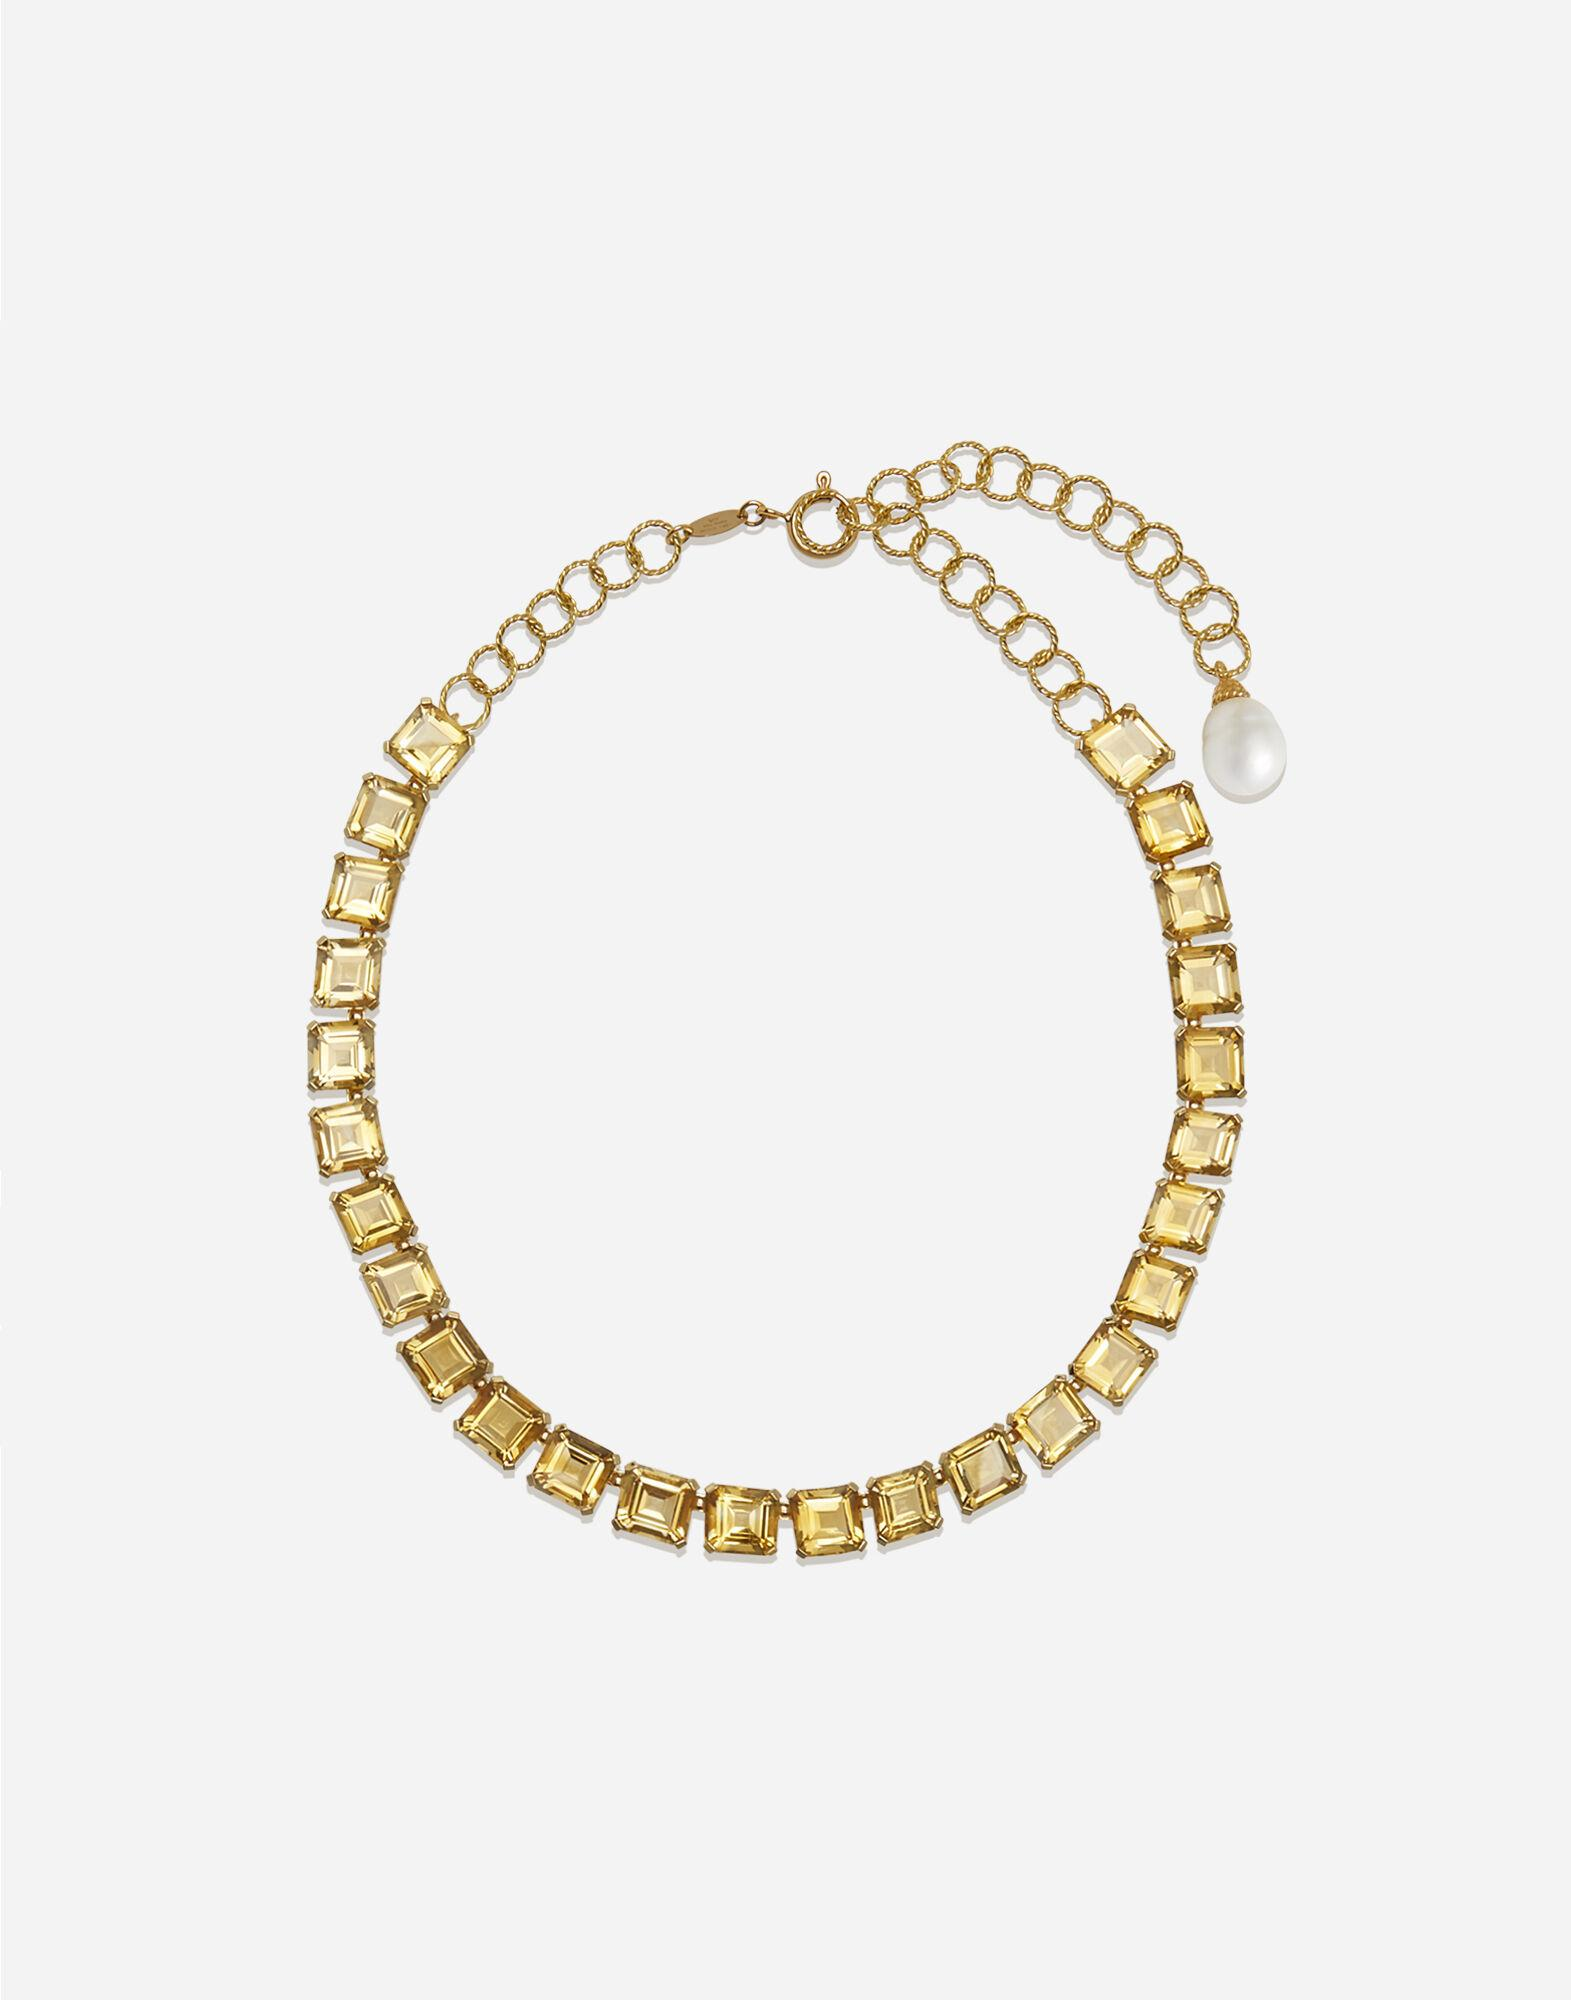 Anna necklace in yellow gold with citrine quartzes